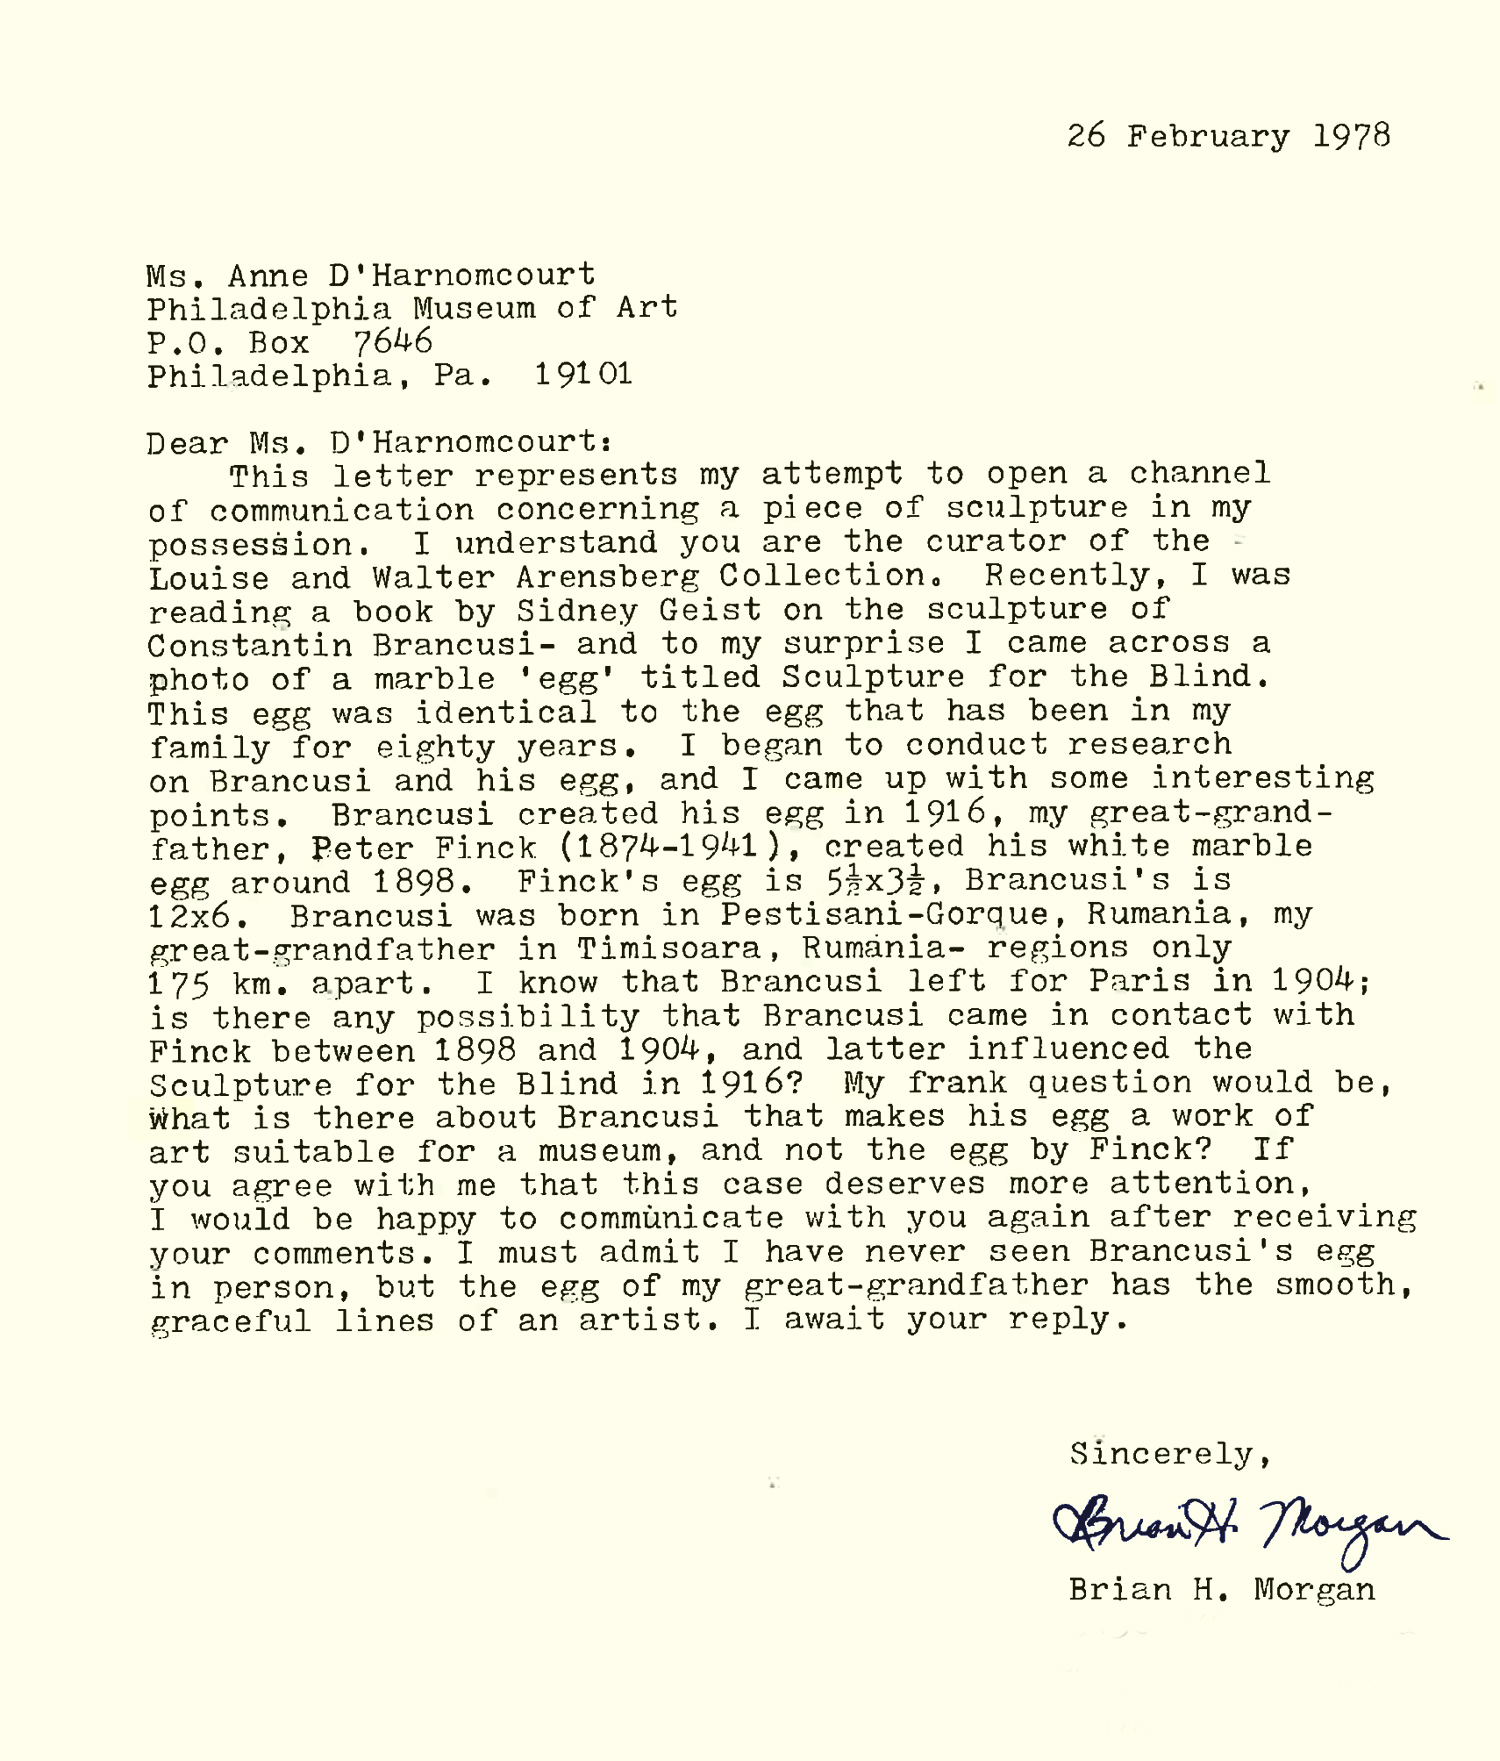 Original letter from a member of the public to the Philadelphia Museum of Art's curator. Written in 1978. Found in the Philadelphia Museum of Art's Archives.